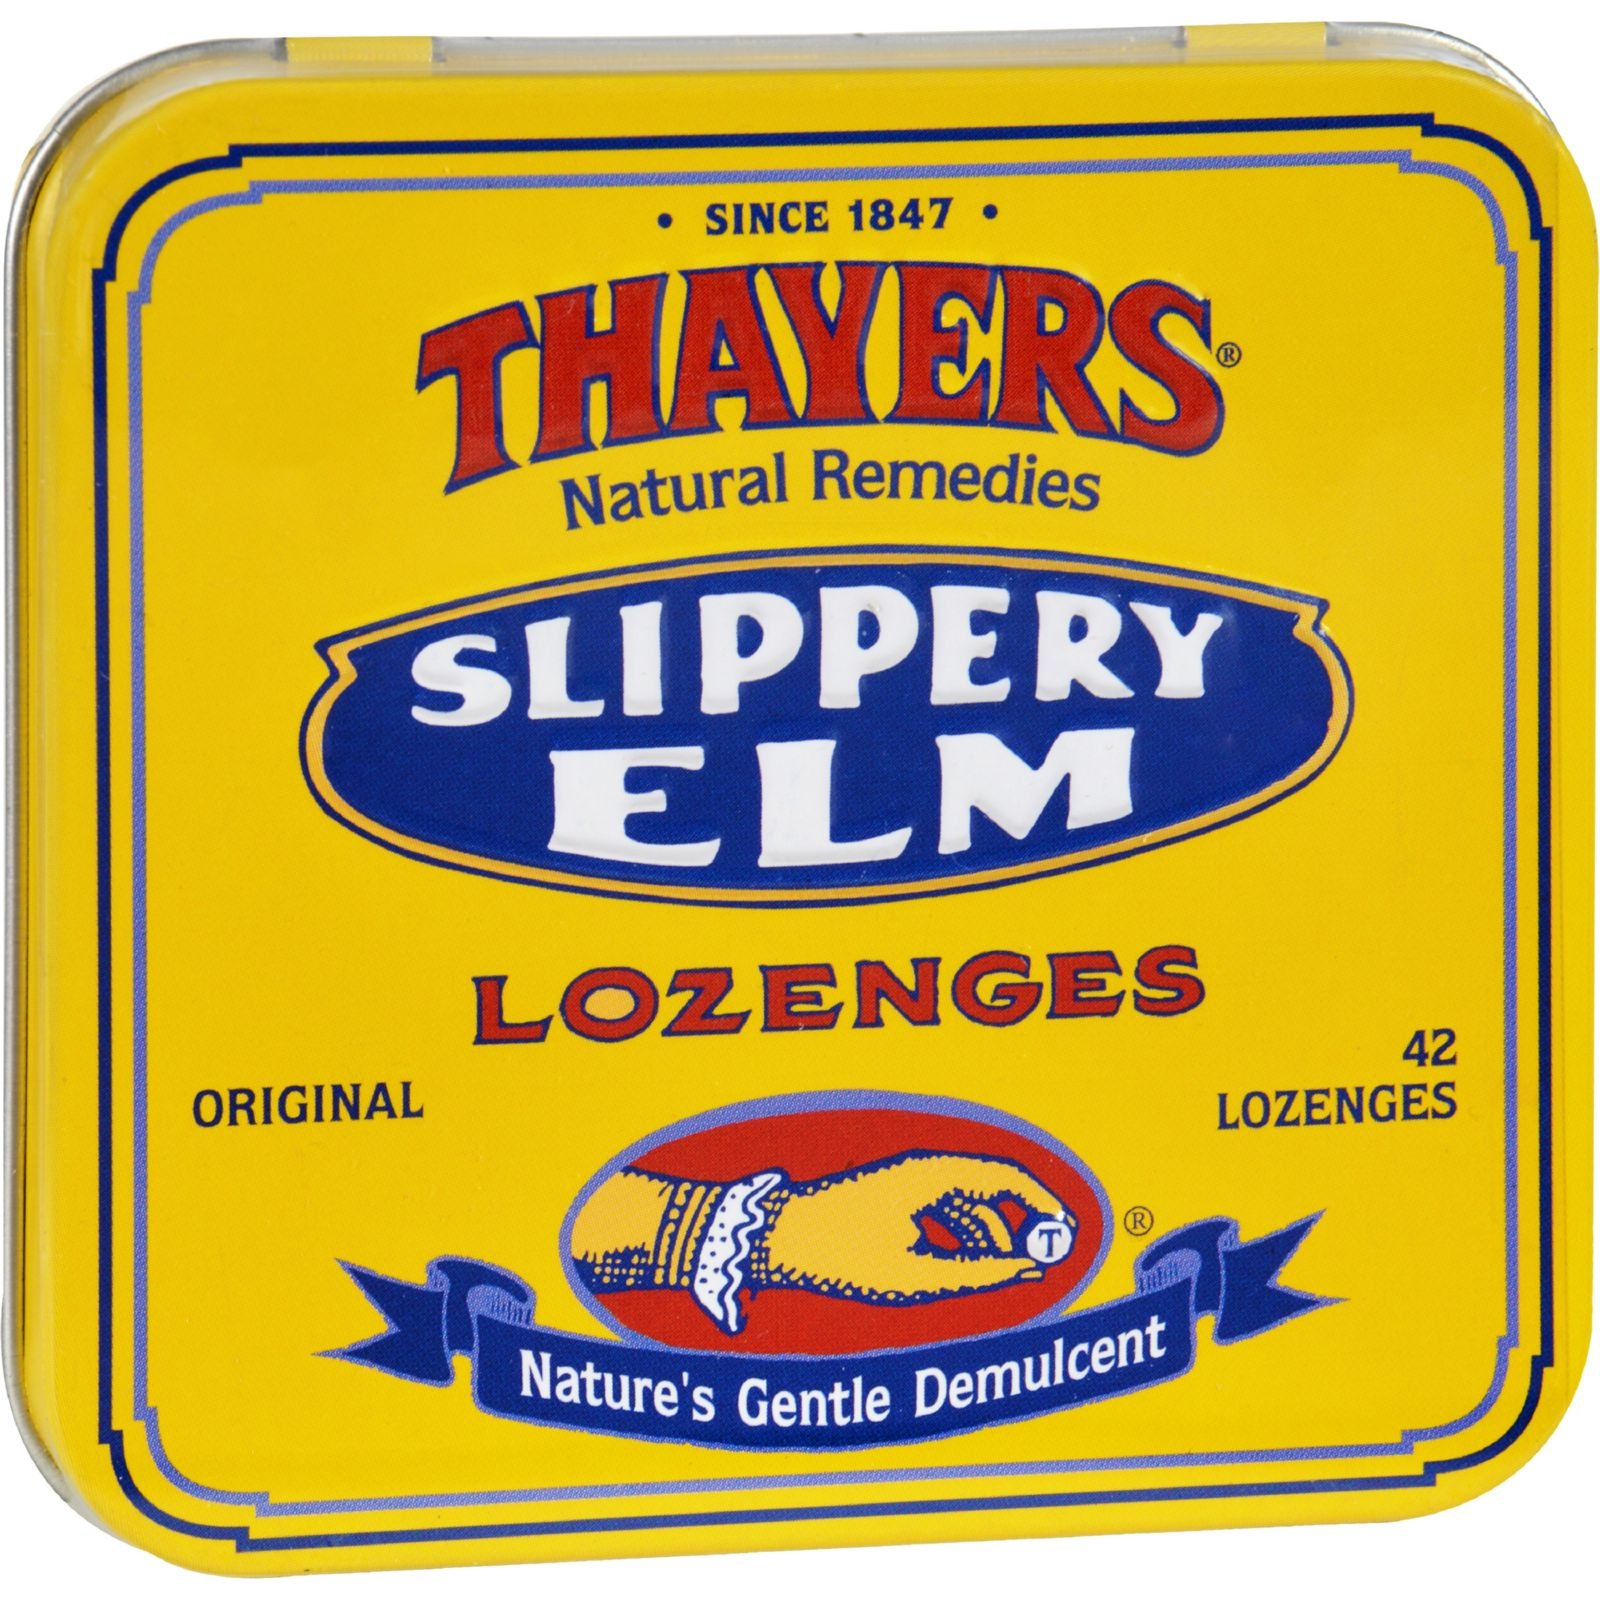 2Pack! Thayers Slippery Elm Lozenges Original - 42 Lozenges - Case of 10 by Sore Throat